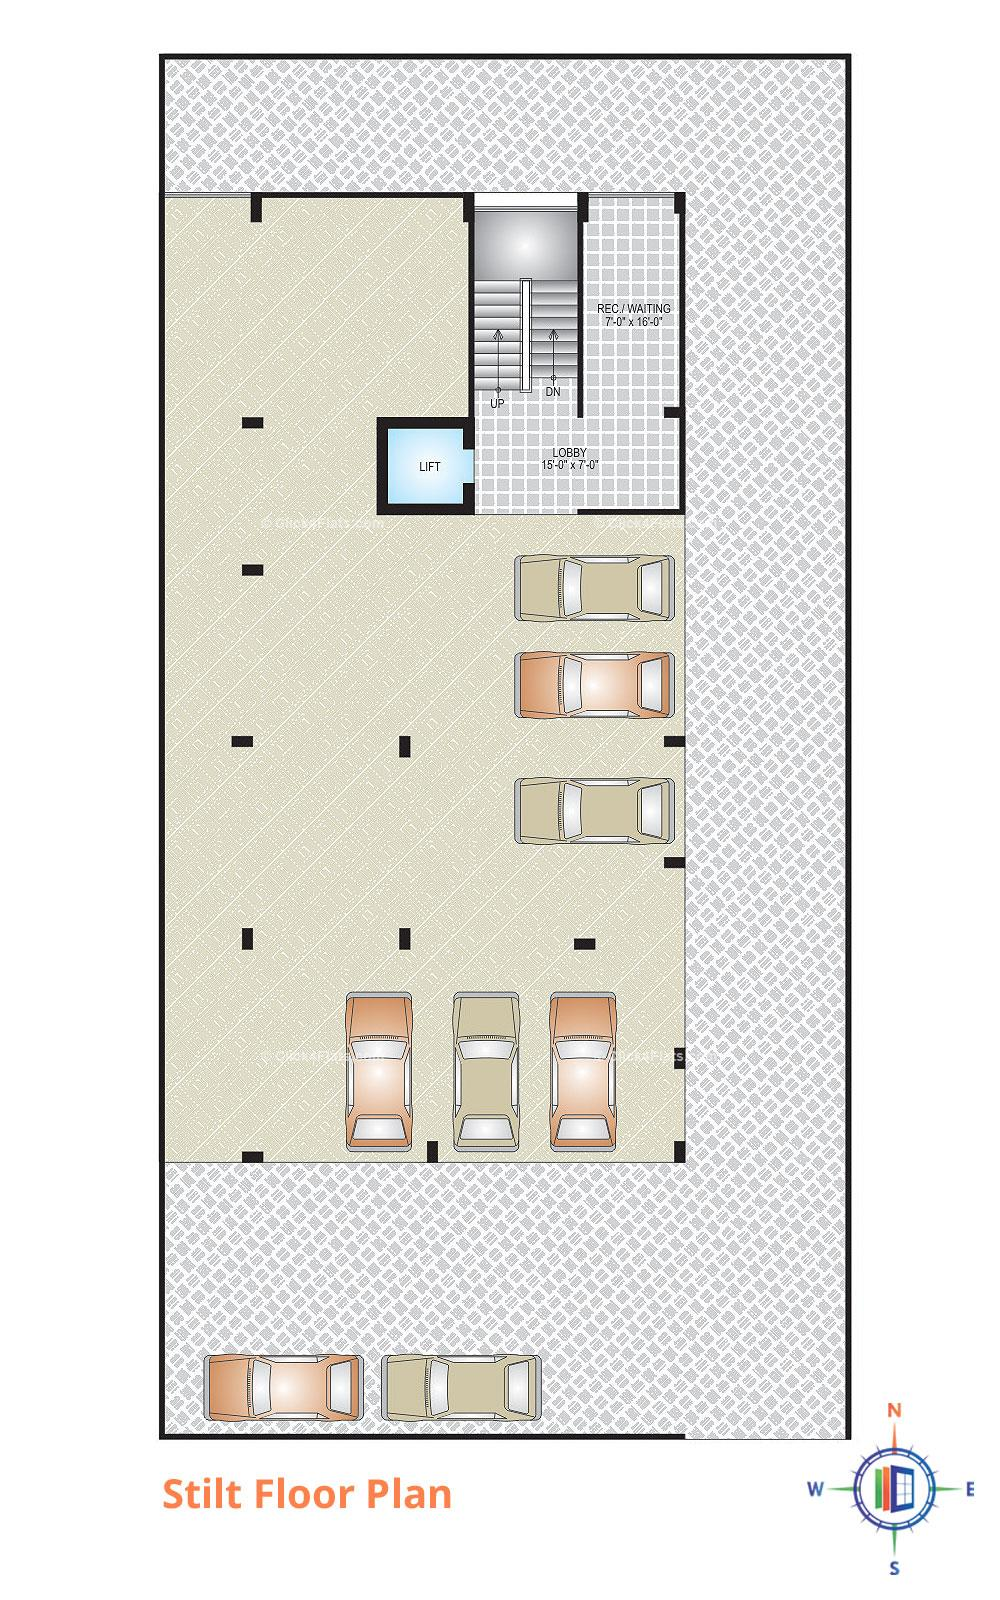 DS Residency Stilt Floor Plan